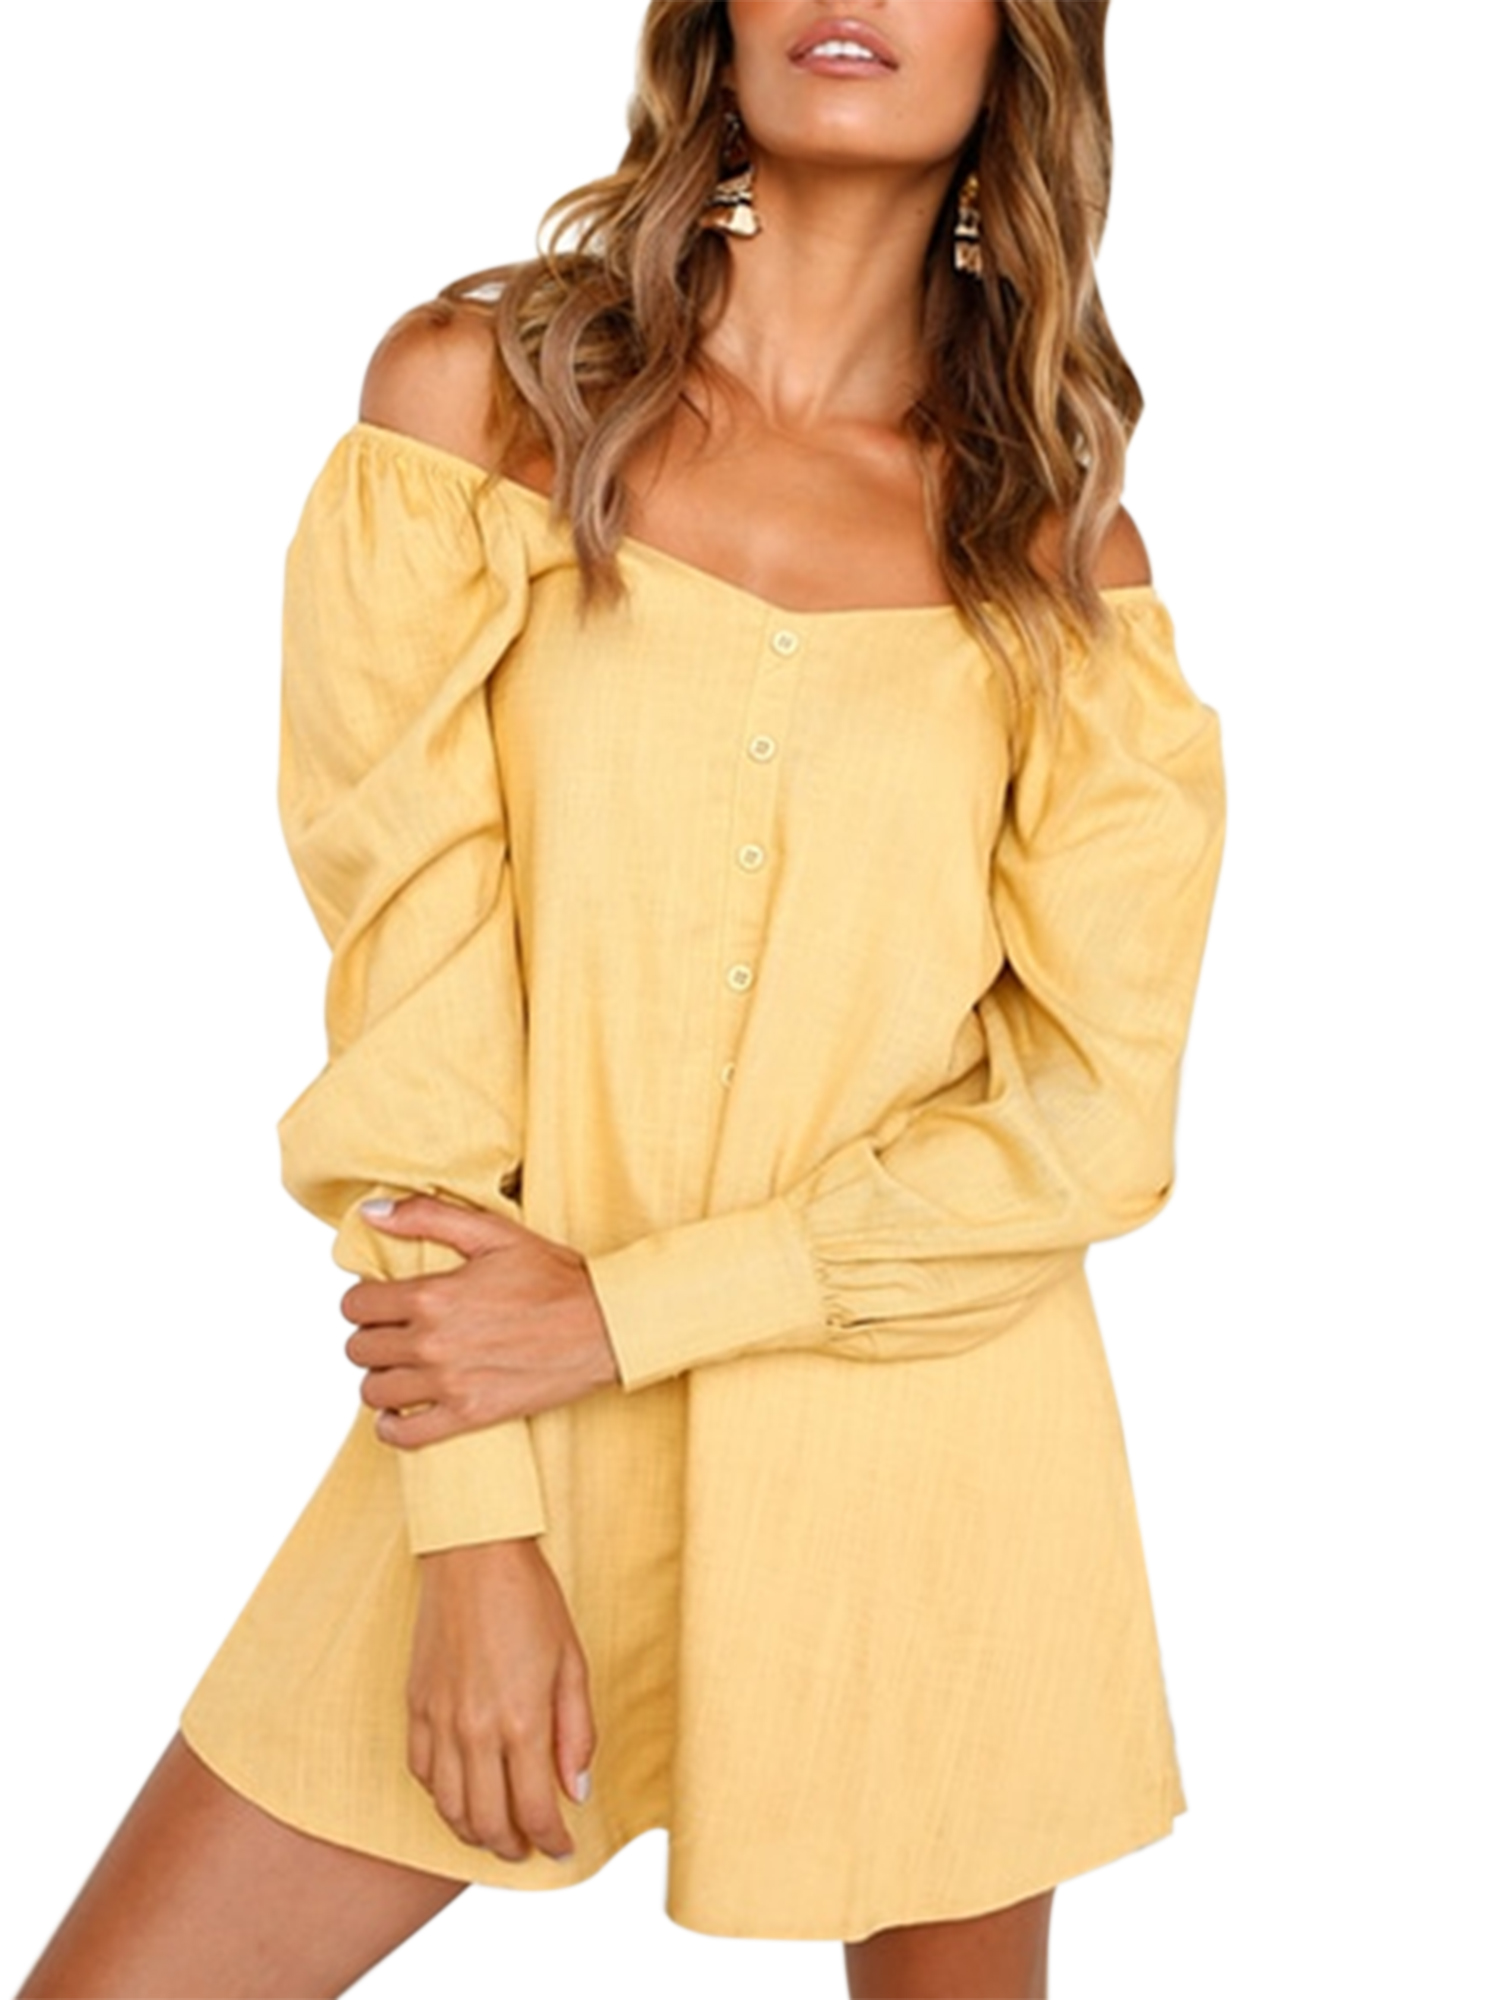 Loose Shirt with Yellow Sleeve Dress